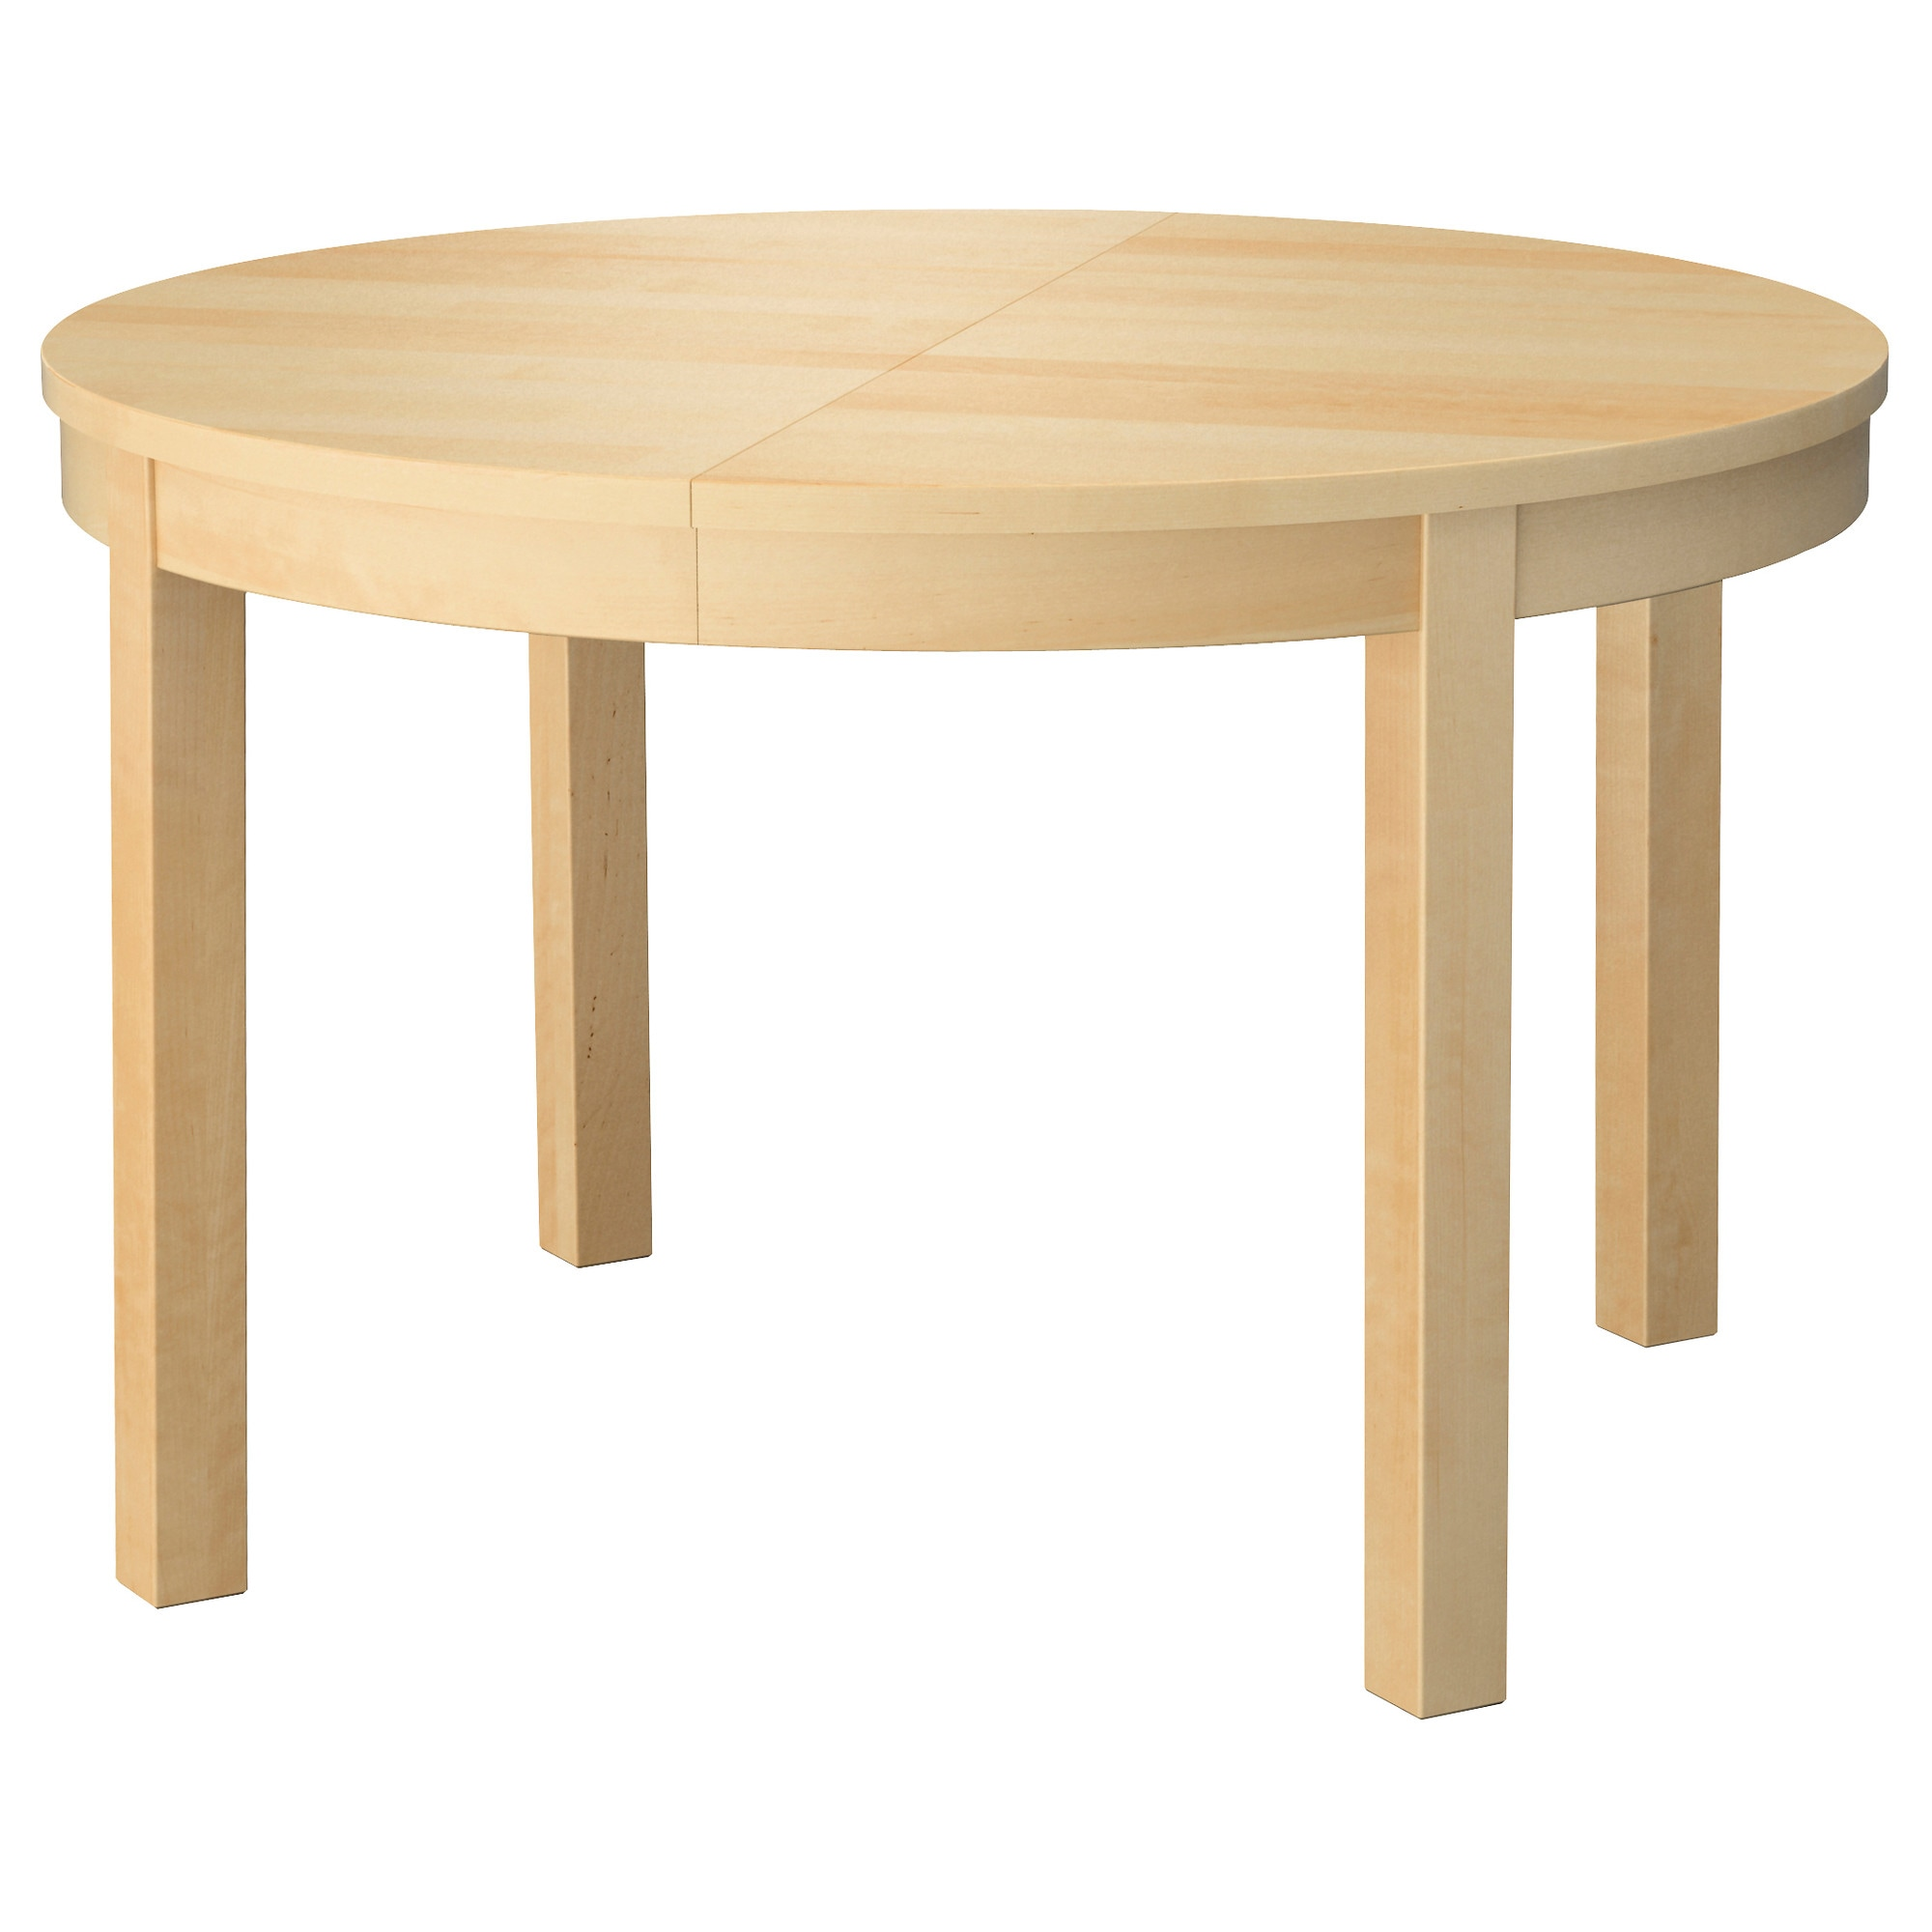 Table ronde ikea - Table ronde en bois ikea ...